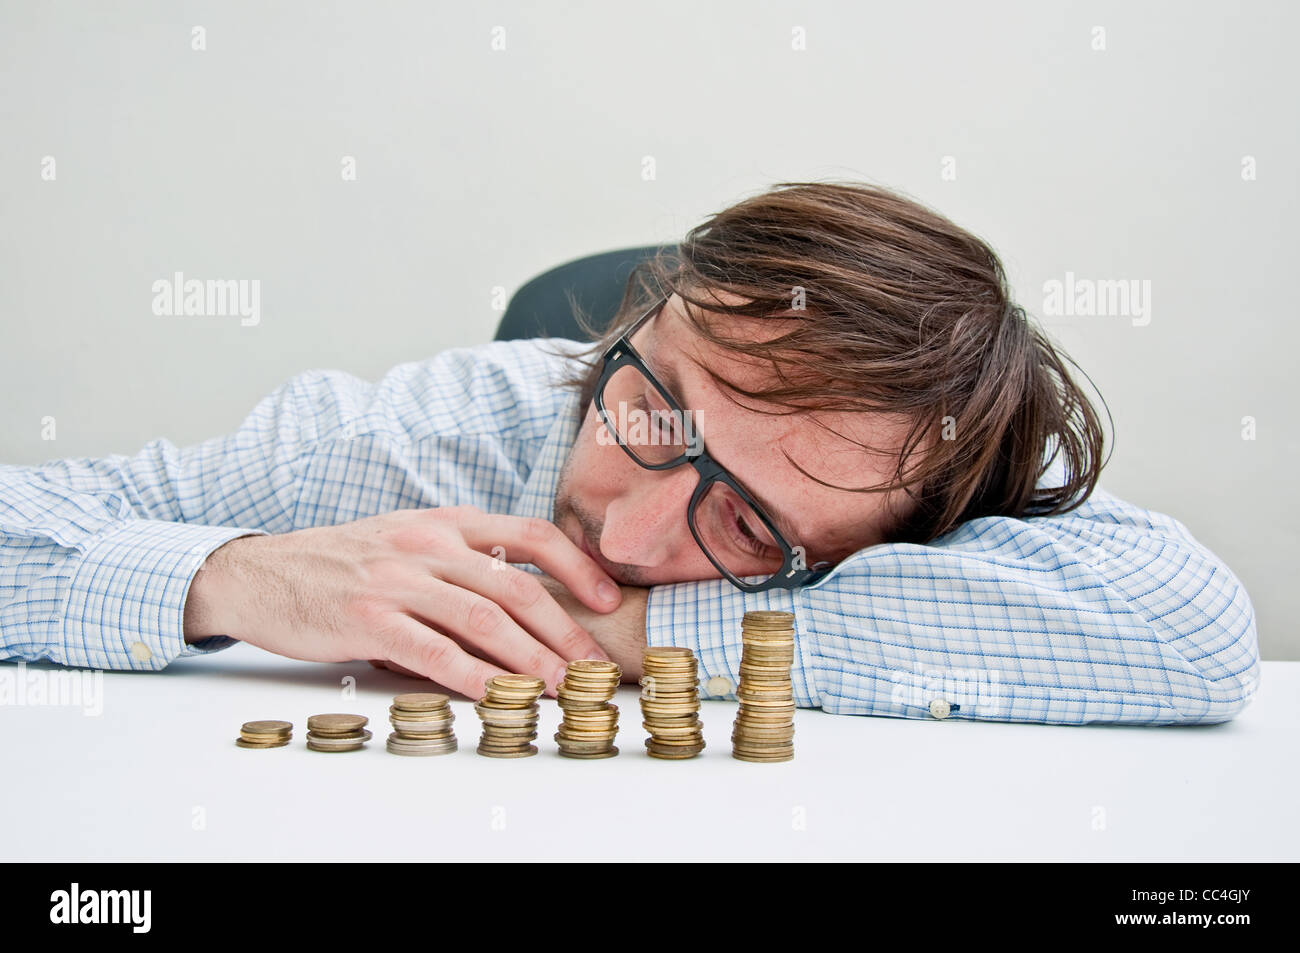 Businessman siting at the table and thinking about possible dollar investments. - Stock Image